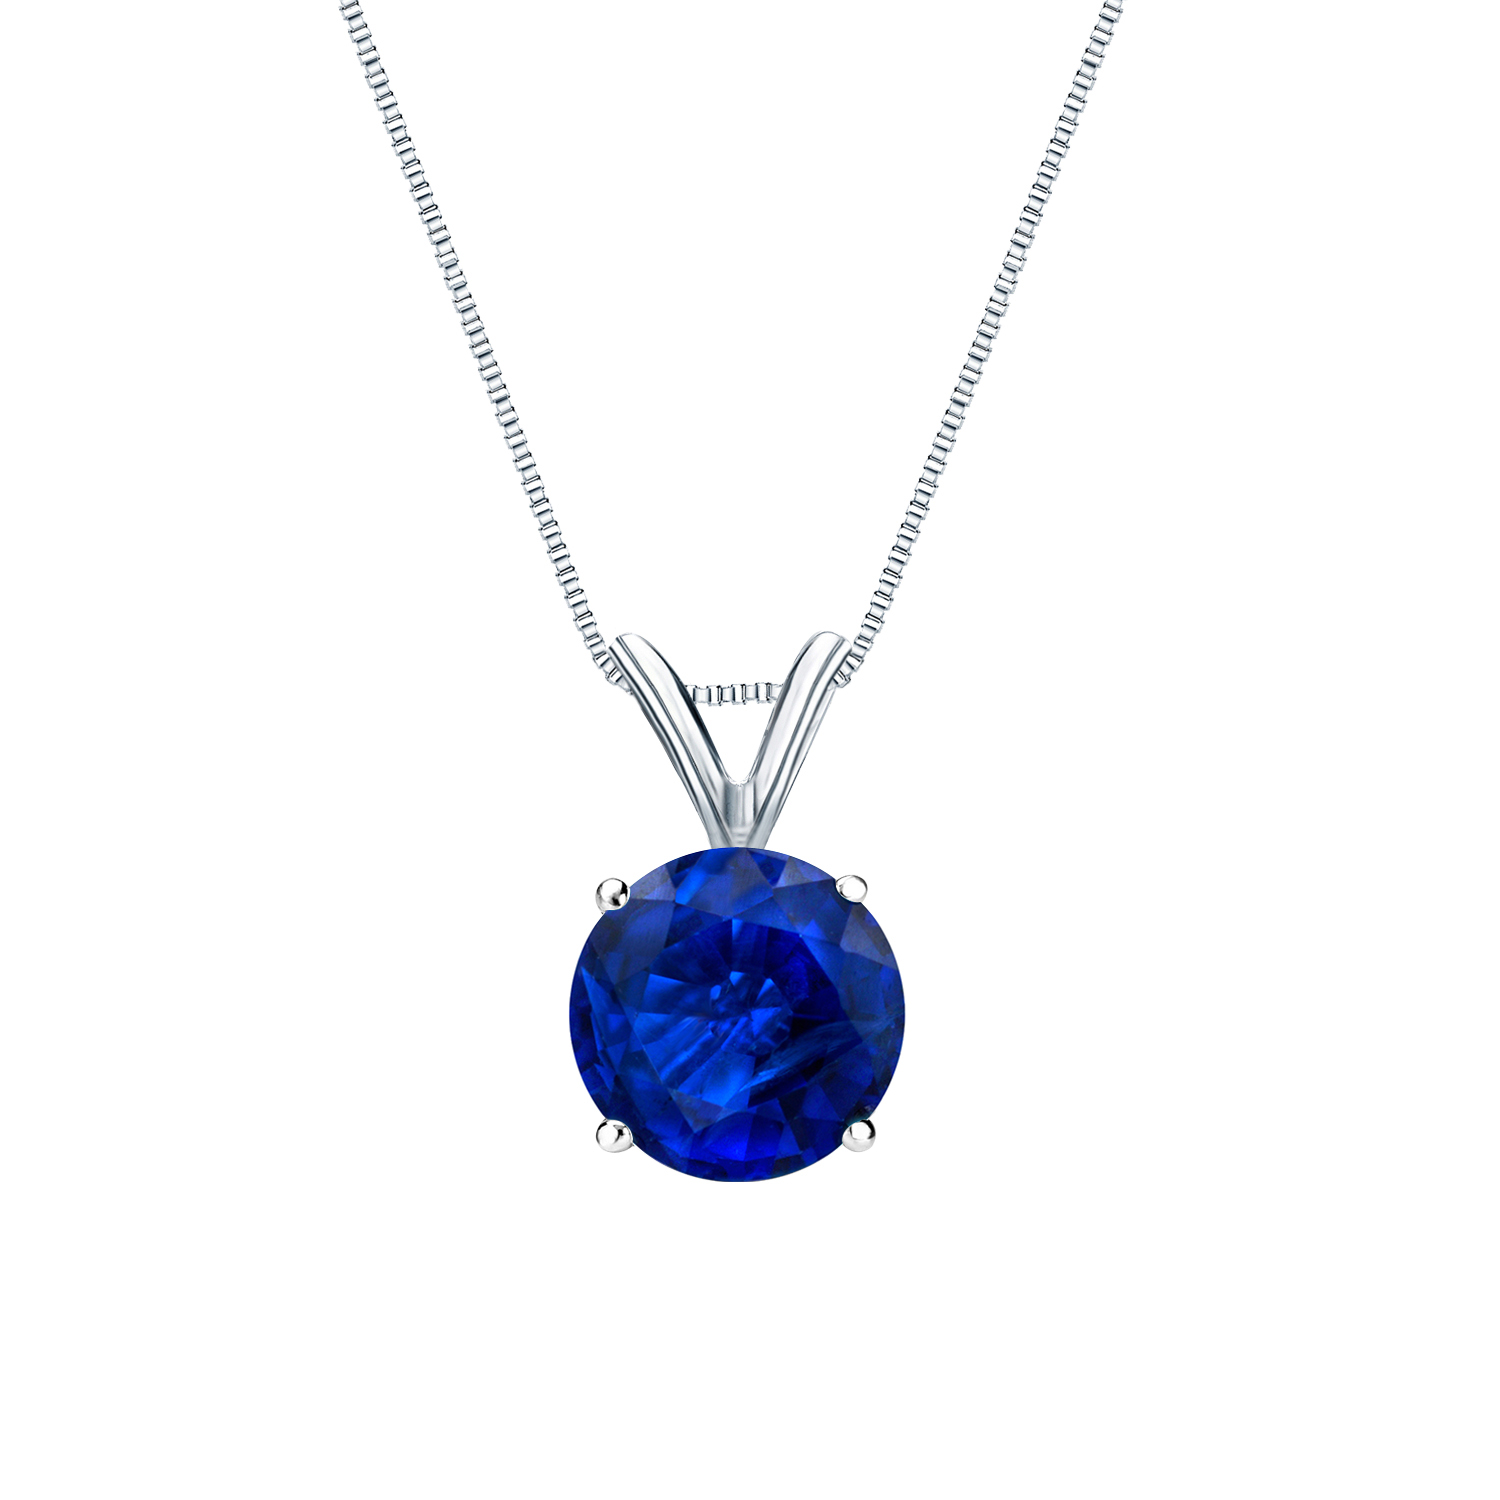 Certified 0.75 ct. tw. Round Blue Sapphire Gemstone Solitaire Pendant in 14k White Gold 4-Prong Basket (Blue, AAA)